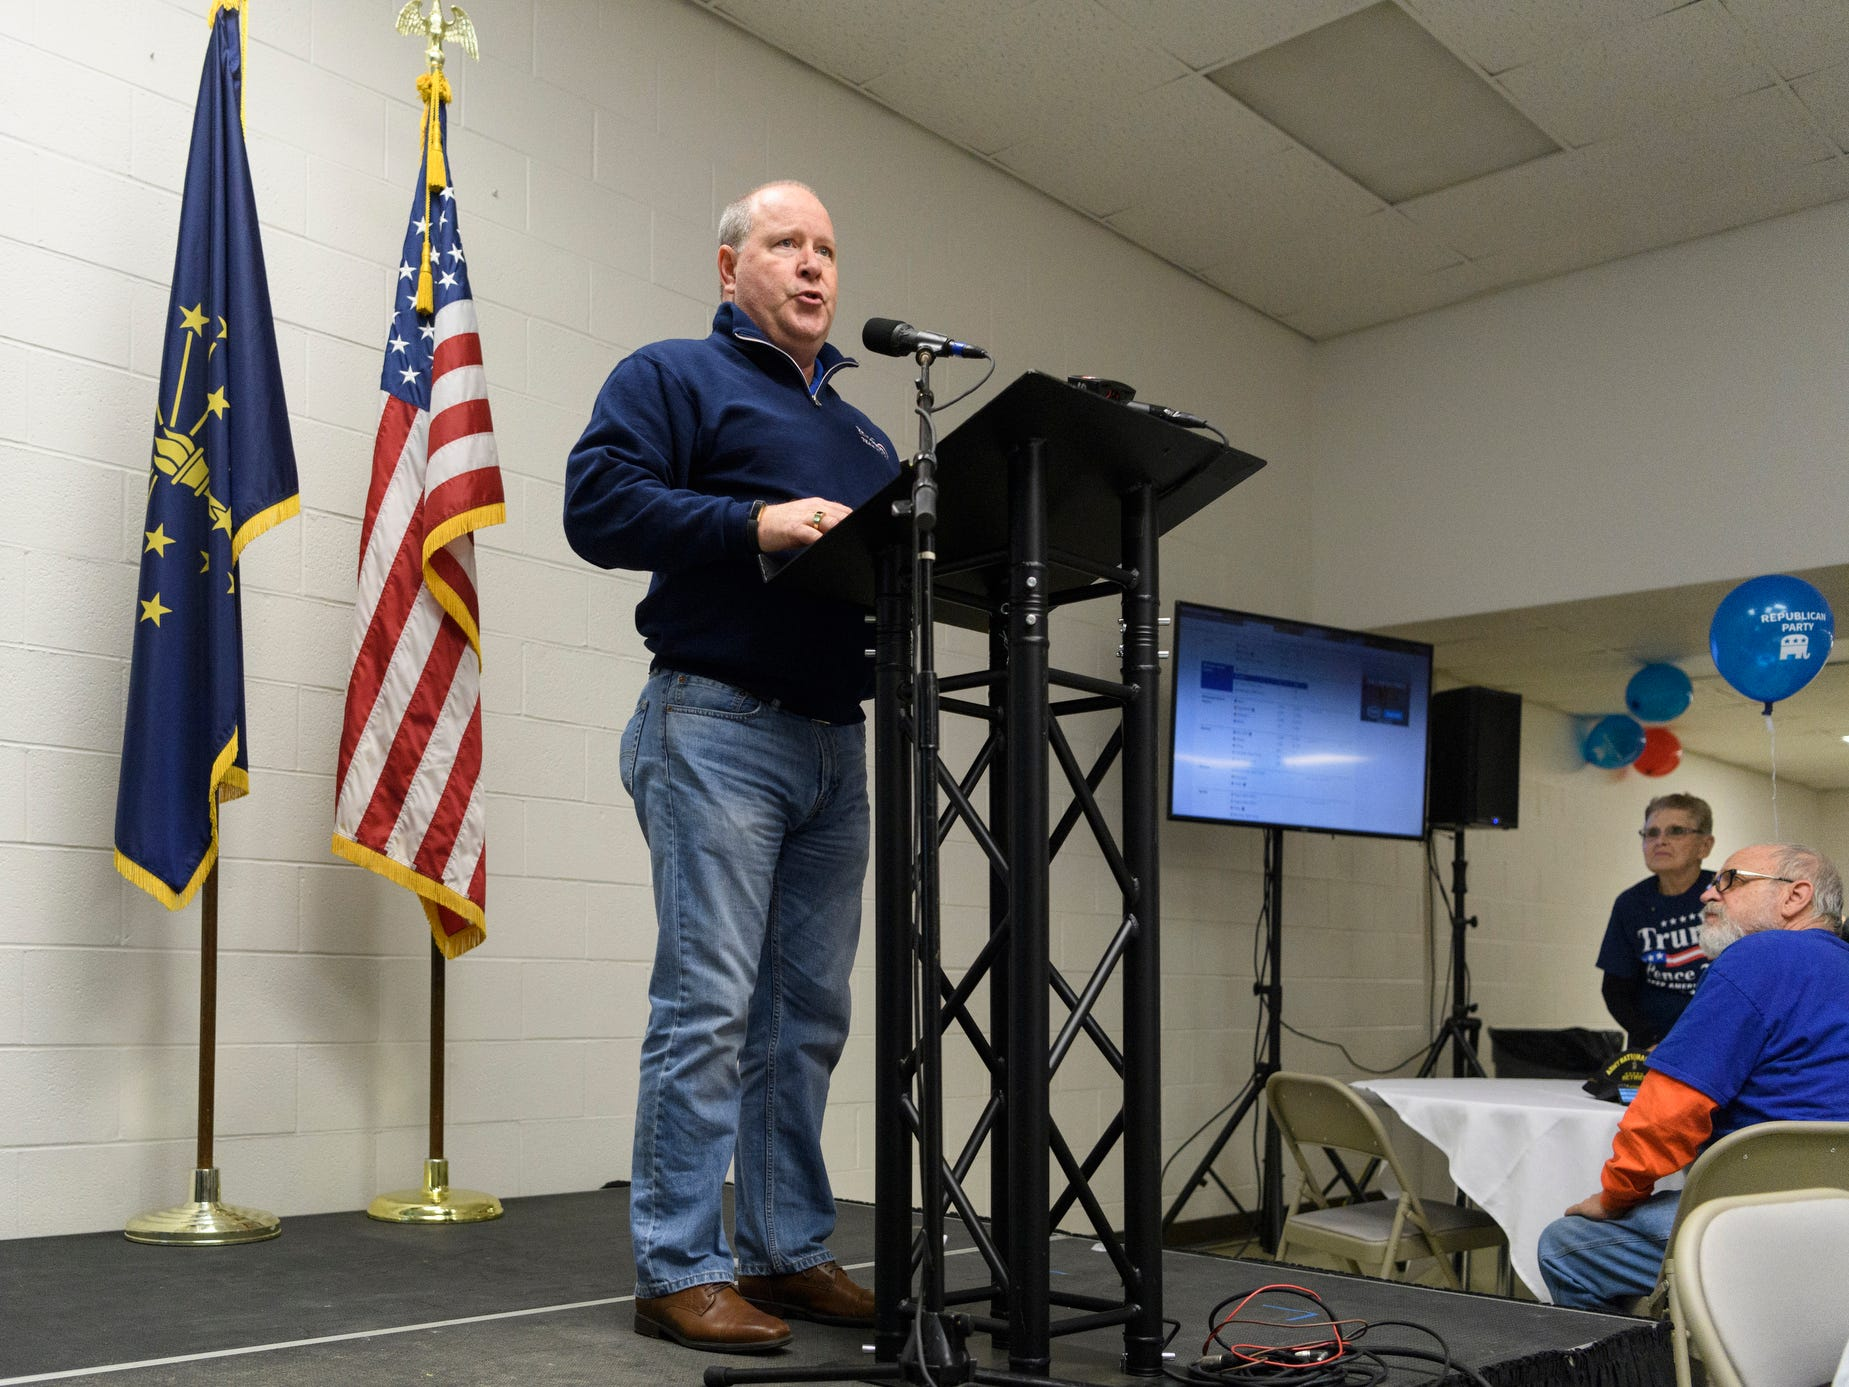 Rep. Larry Bucshon thanks voters in attendance at the Republican watch party held inside the C K Newsome Community Center in Evansville, Ind., Tuesday, Nov. 6, 2018. He successfully kept his seat in the Indiana 8th District U.S House race against Democrat William Tanoos.